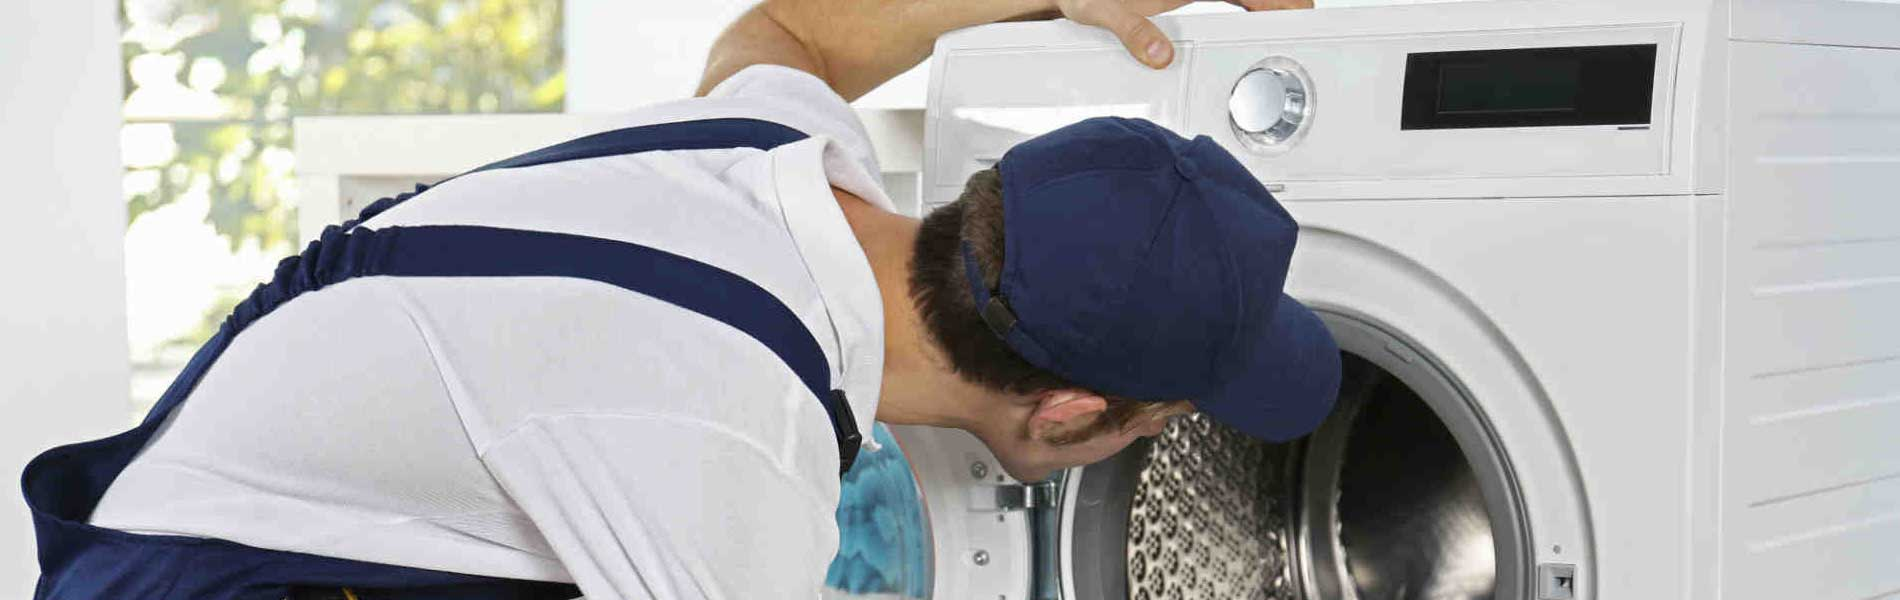 Onida Washing Machine Mechanic in Kazhipattur